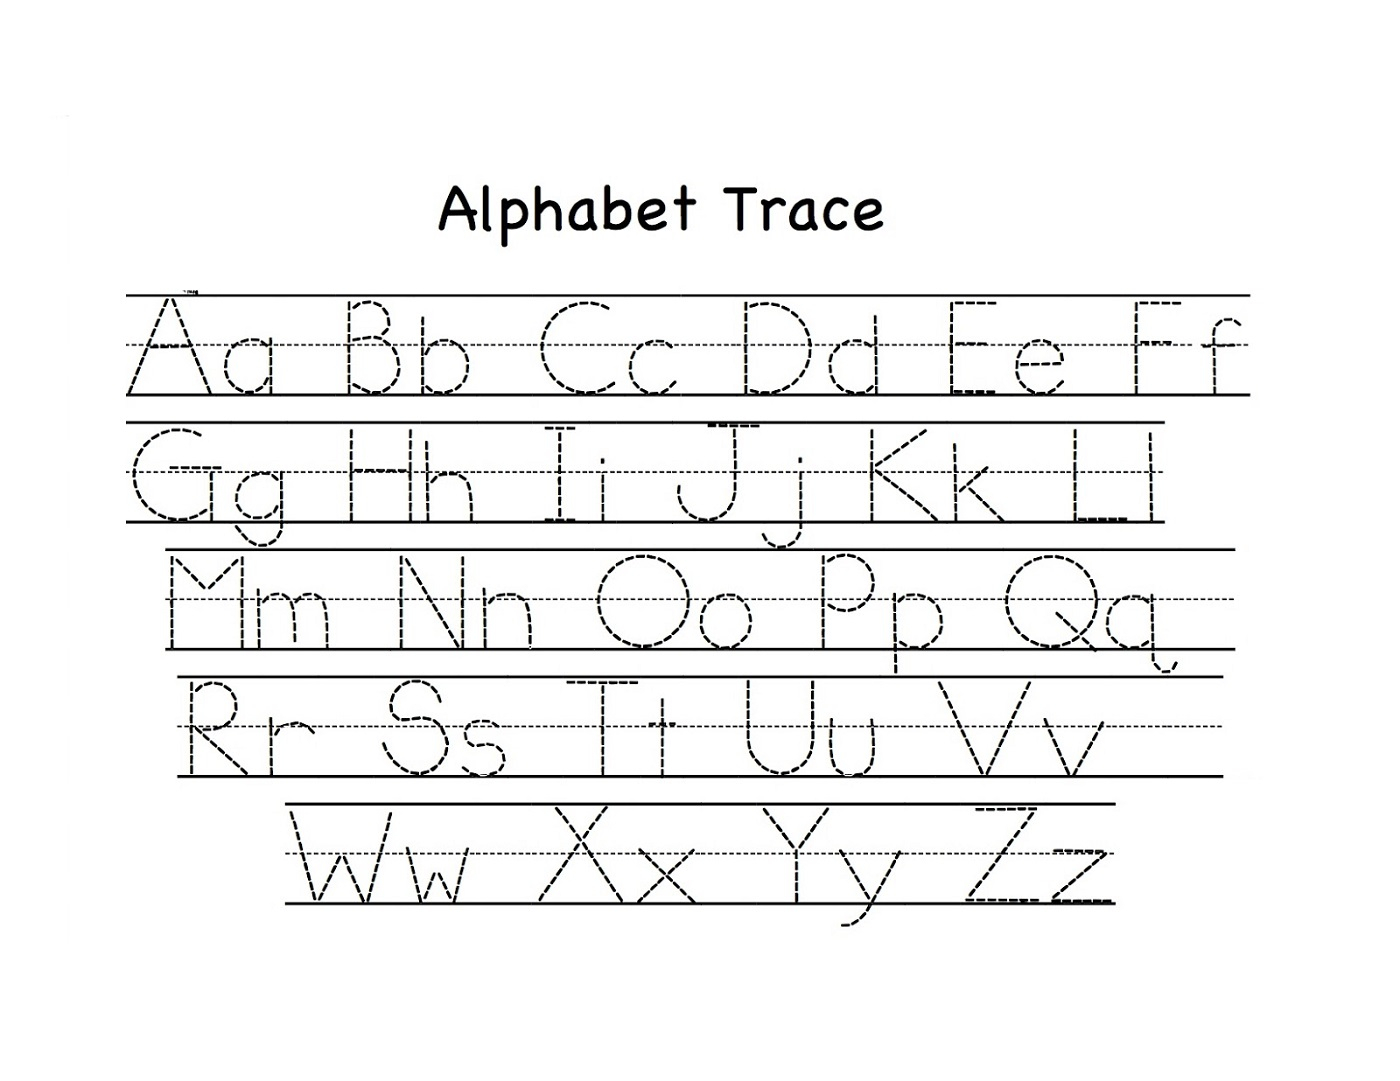 Alphabet Tracing Worksheets A-Z Printable | Loving Printable for Tracing Letters Worksheets A-Z